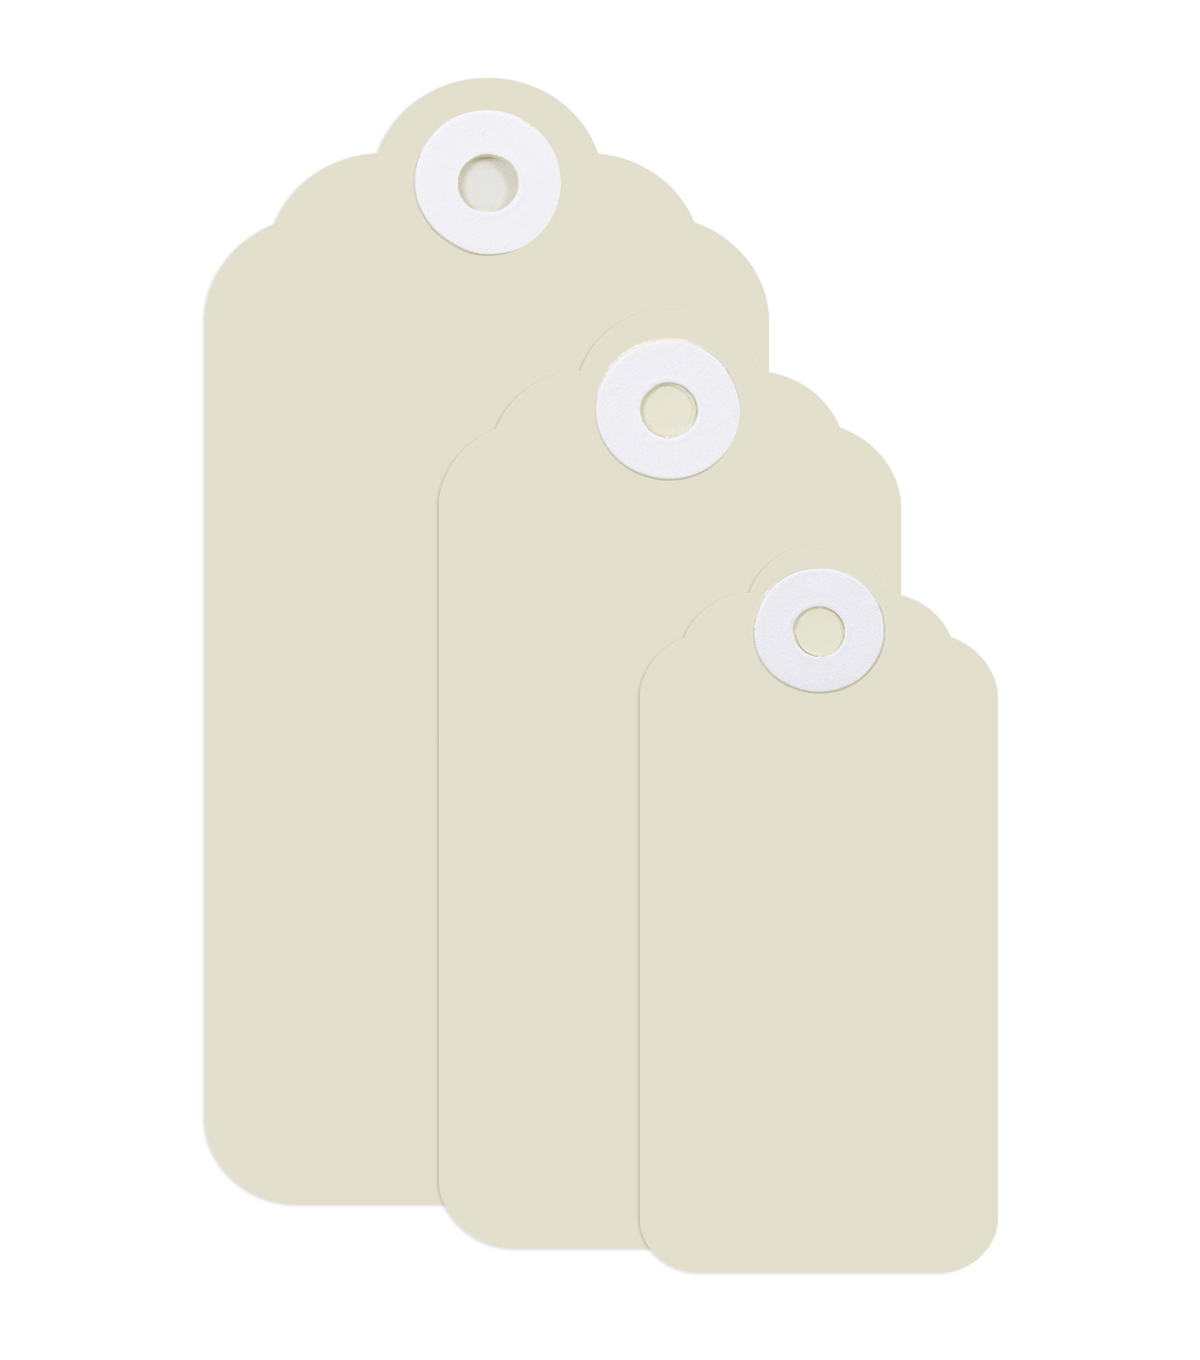 Park Lane 3 pk Scalloped Tags-Off White